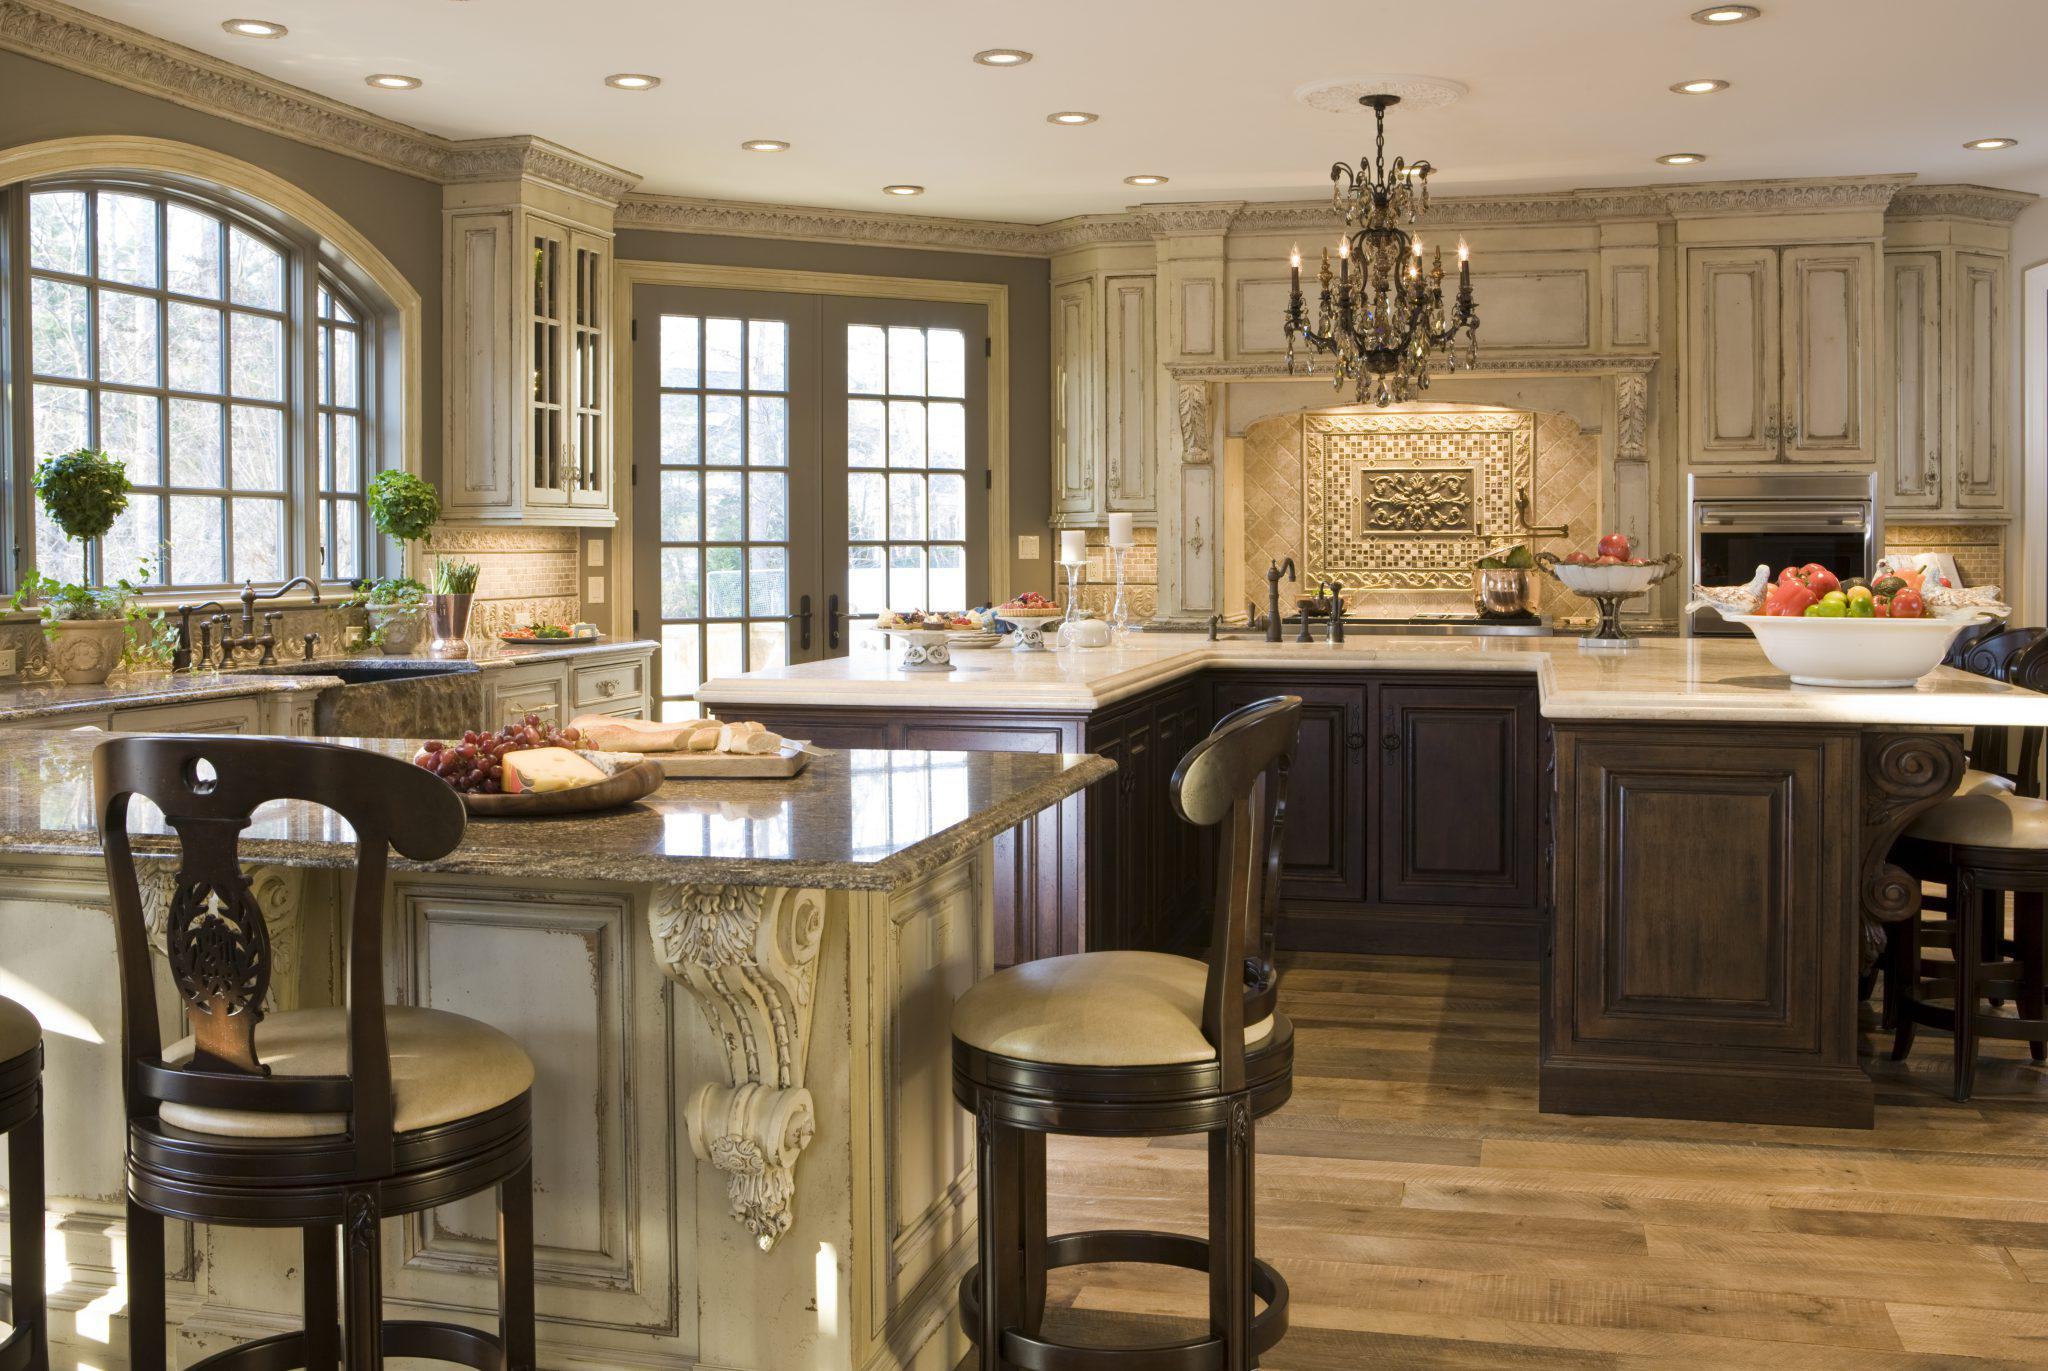 Image of: New Italian Kitchen & Interior